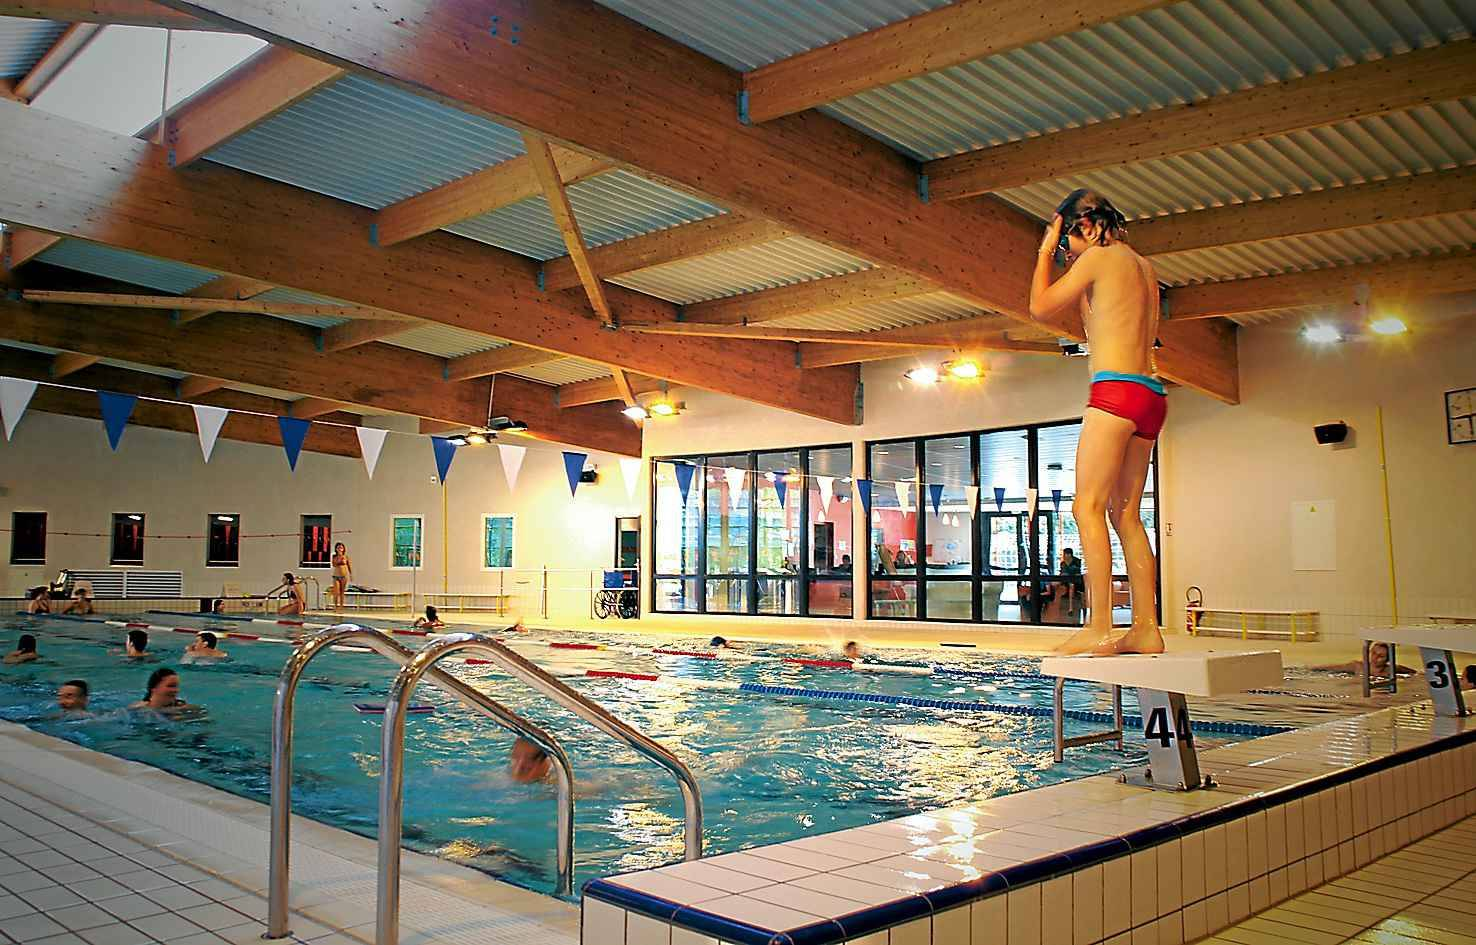 Les piscines d bordent de nageurs for Brequigny piscine